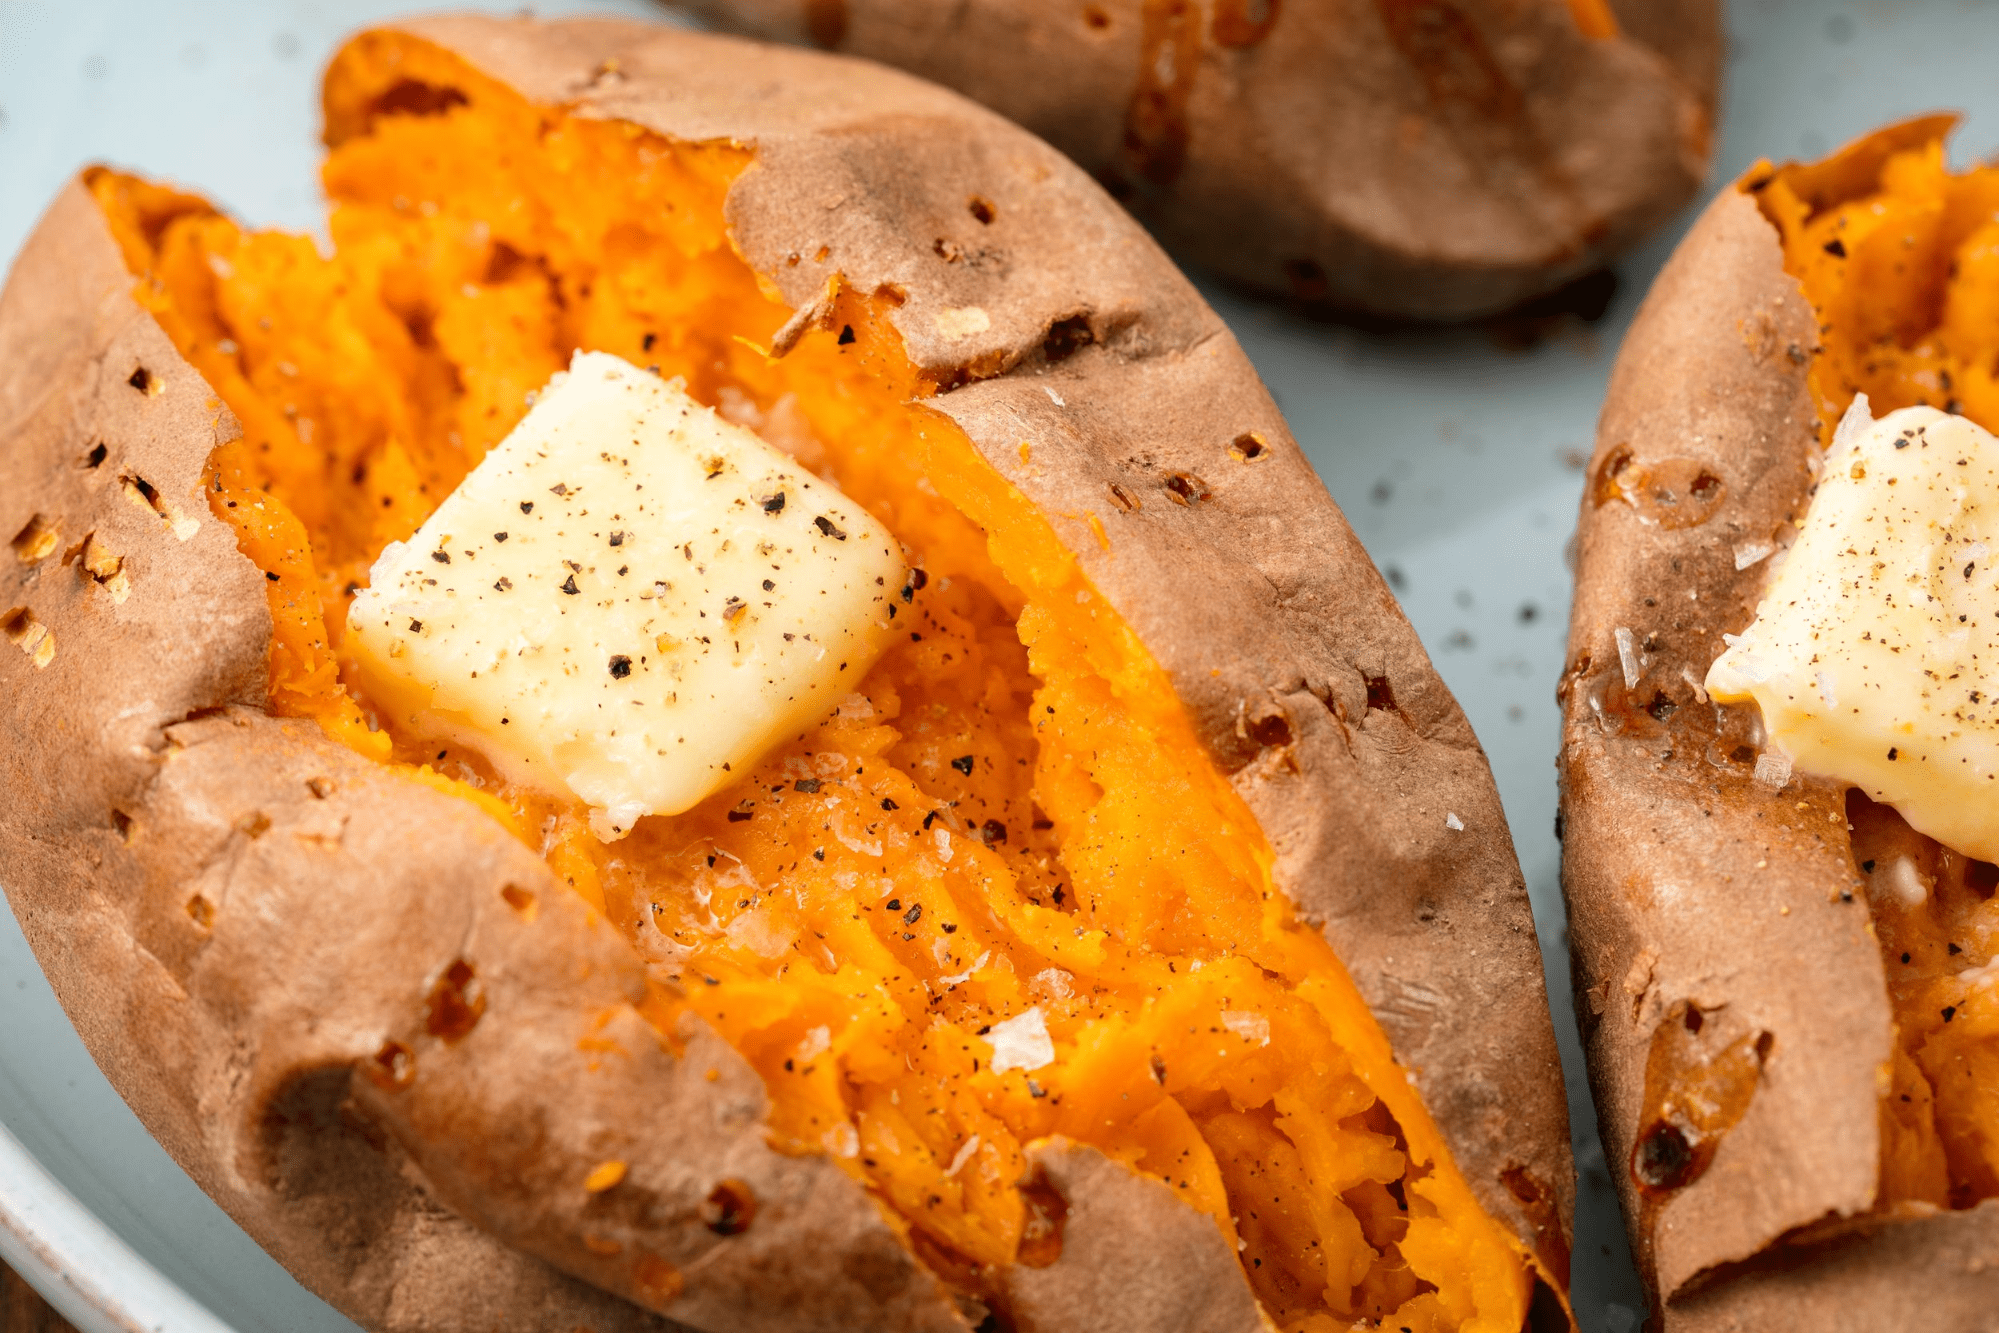 Baked sweet potatoes - healthier to pair with meat